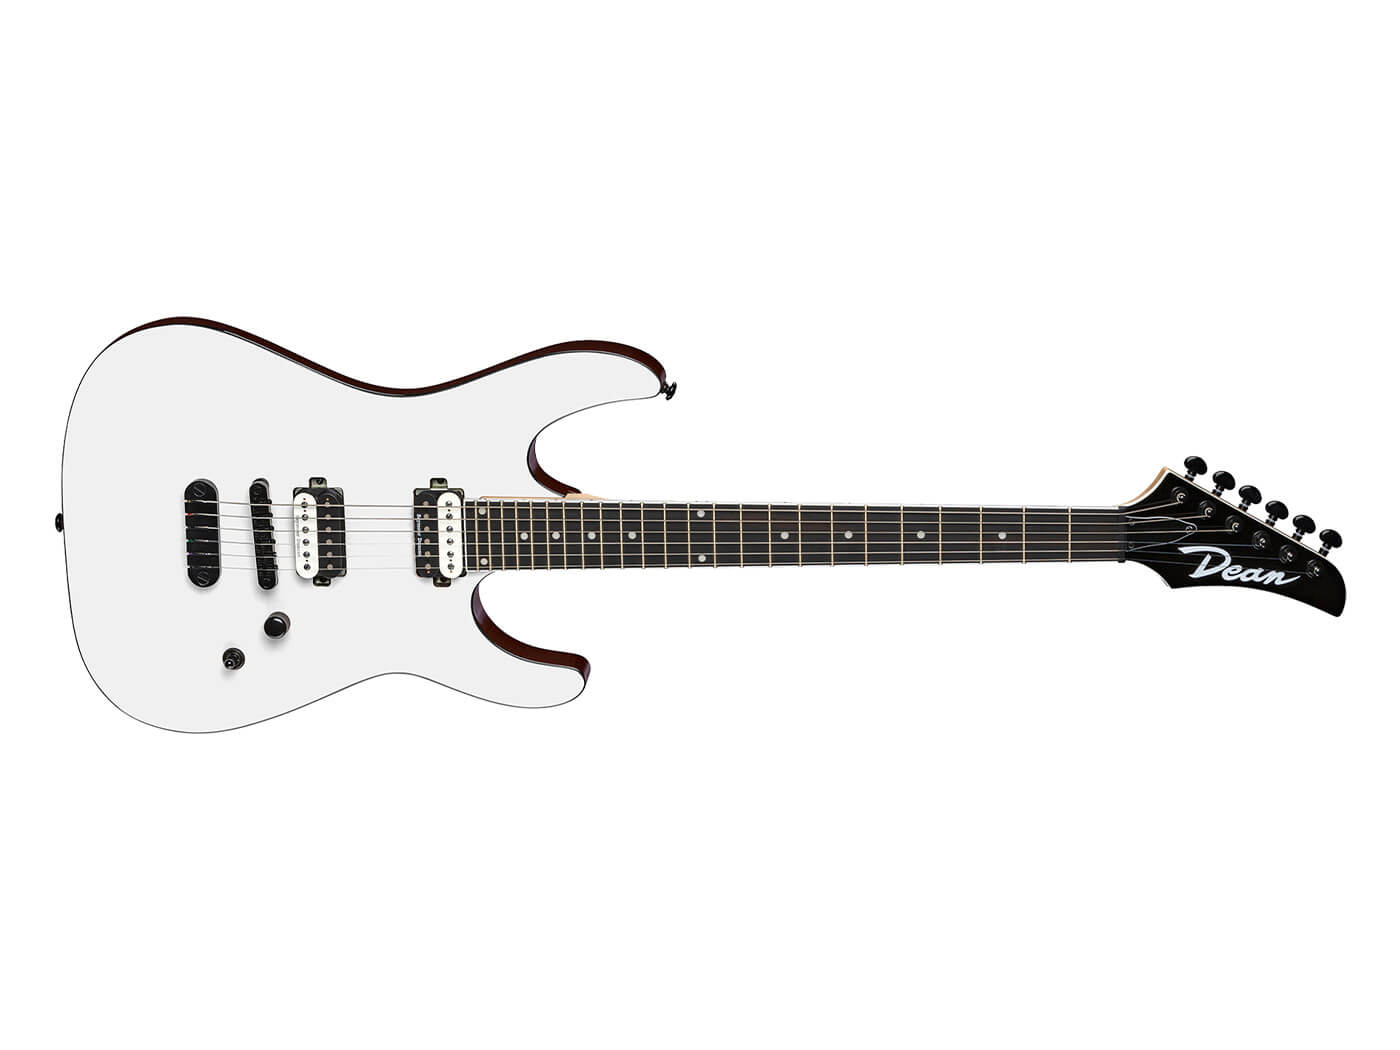 Dean expands the 2020 Select Series with the MD 24 Select